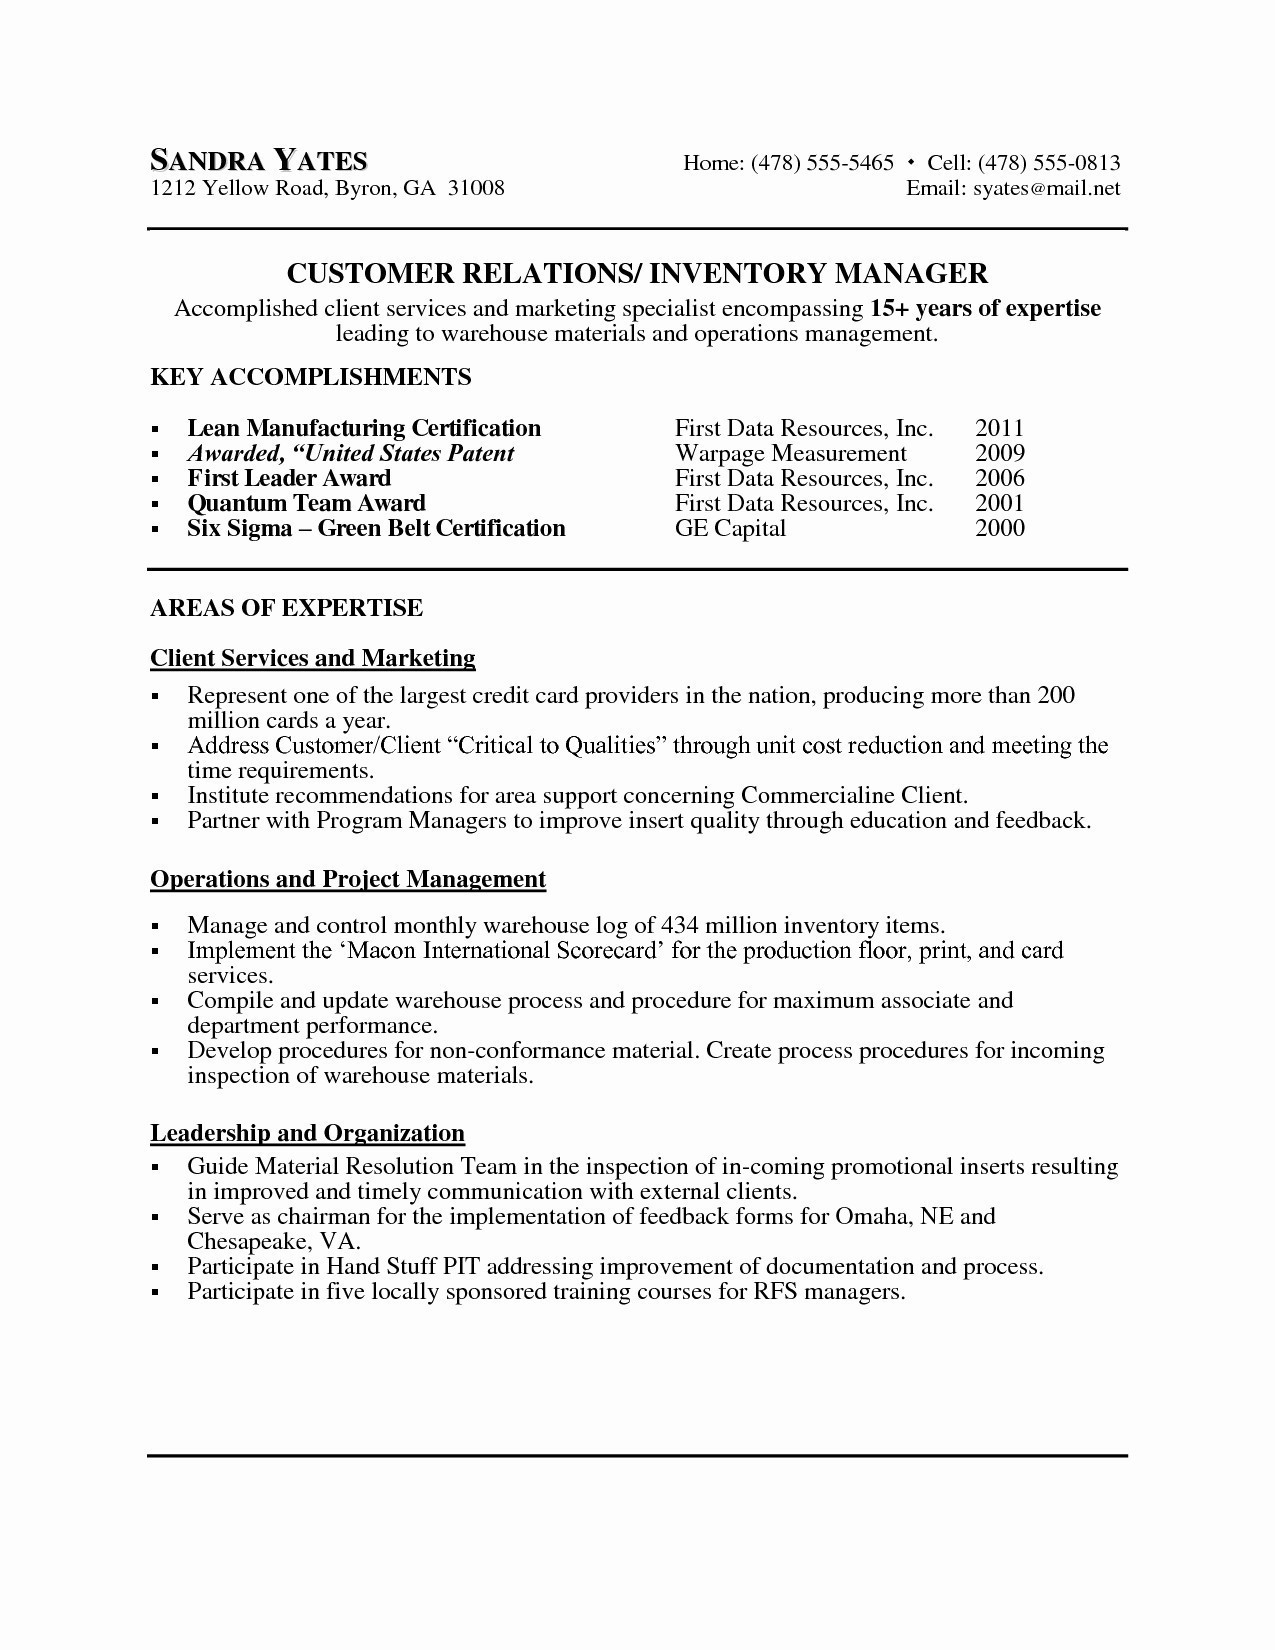 operation manager resume template example-Operation Manager Resume Fresh Beautiful American Resume Sample New Student Resume 0d Wallpapers 42 Operation 6-n